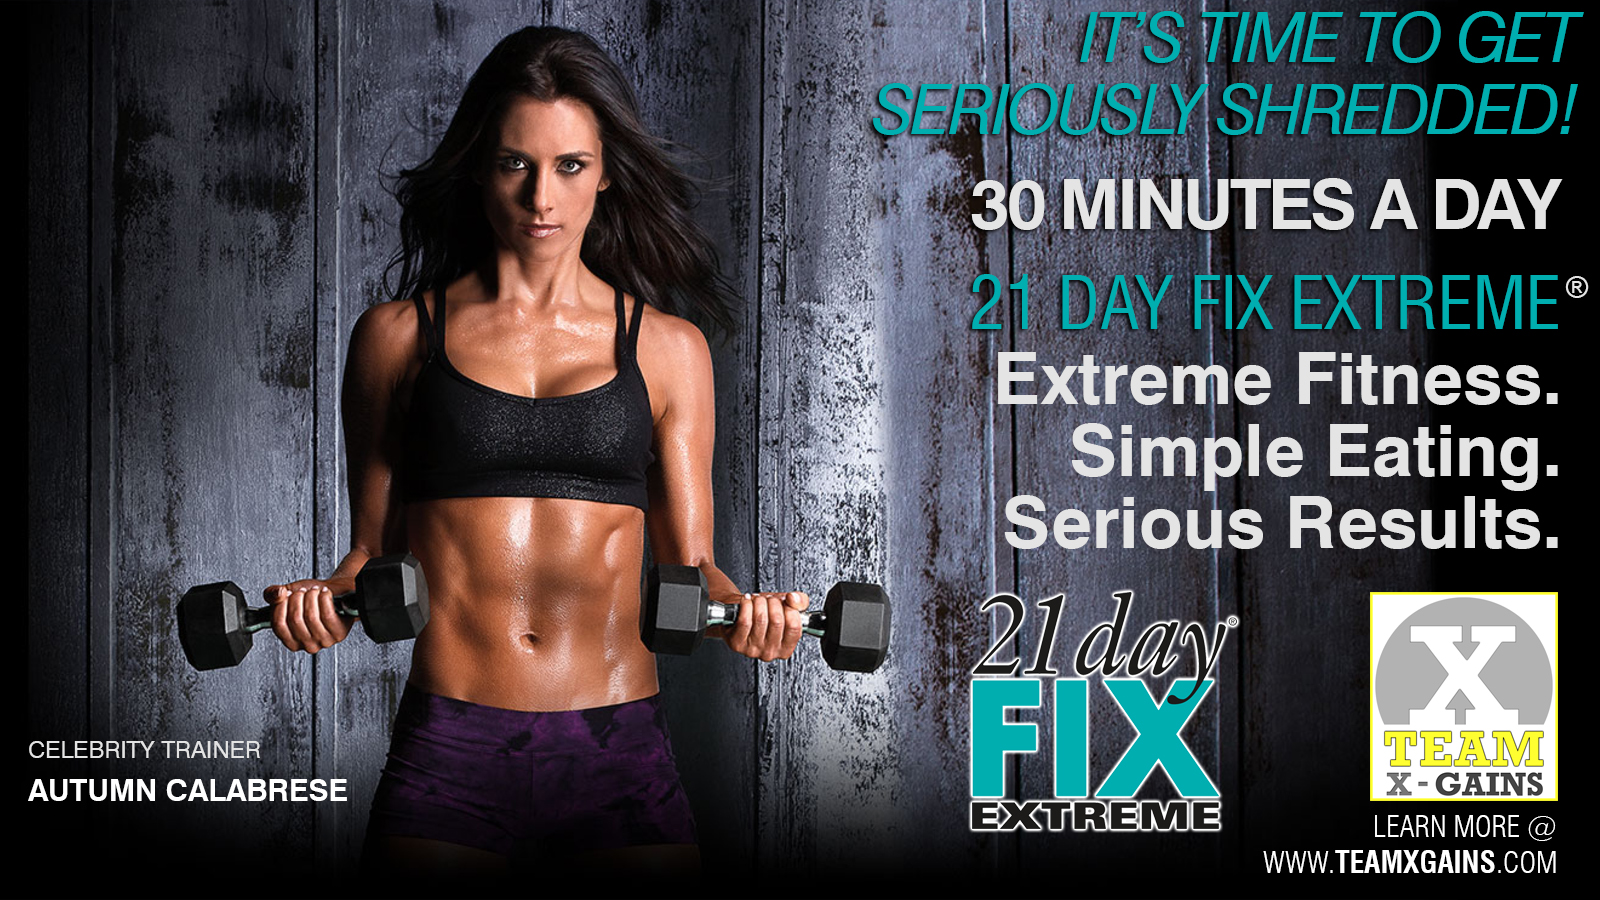 21 Day Fix Extreme Get Seriously Shredded Team X Gains